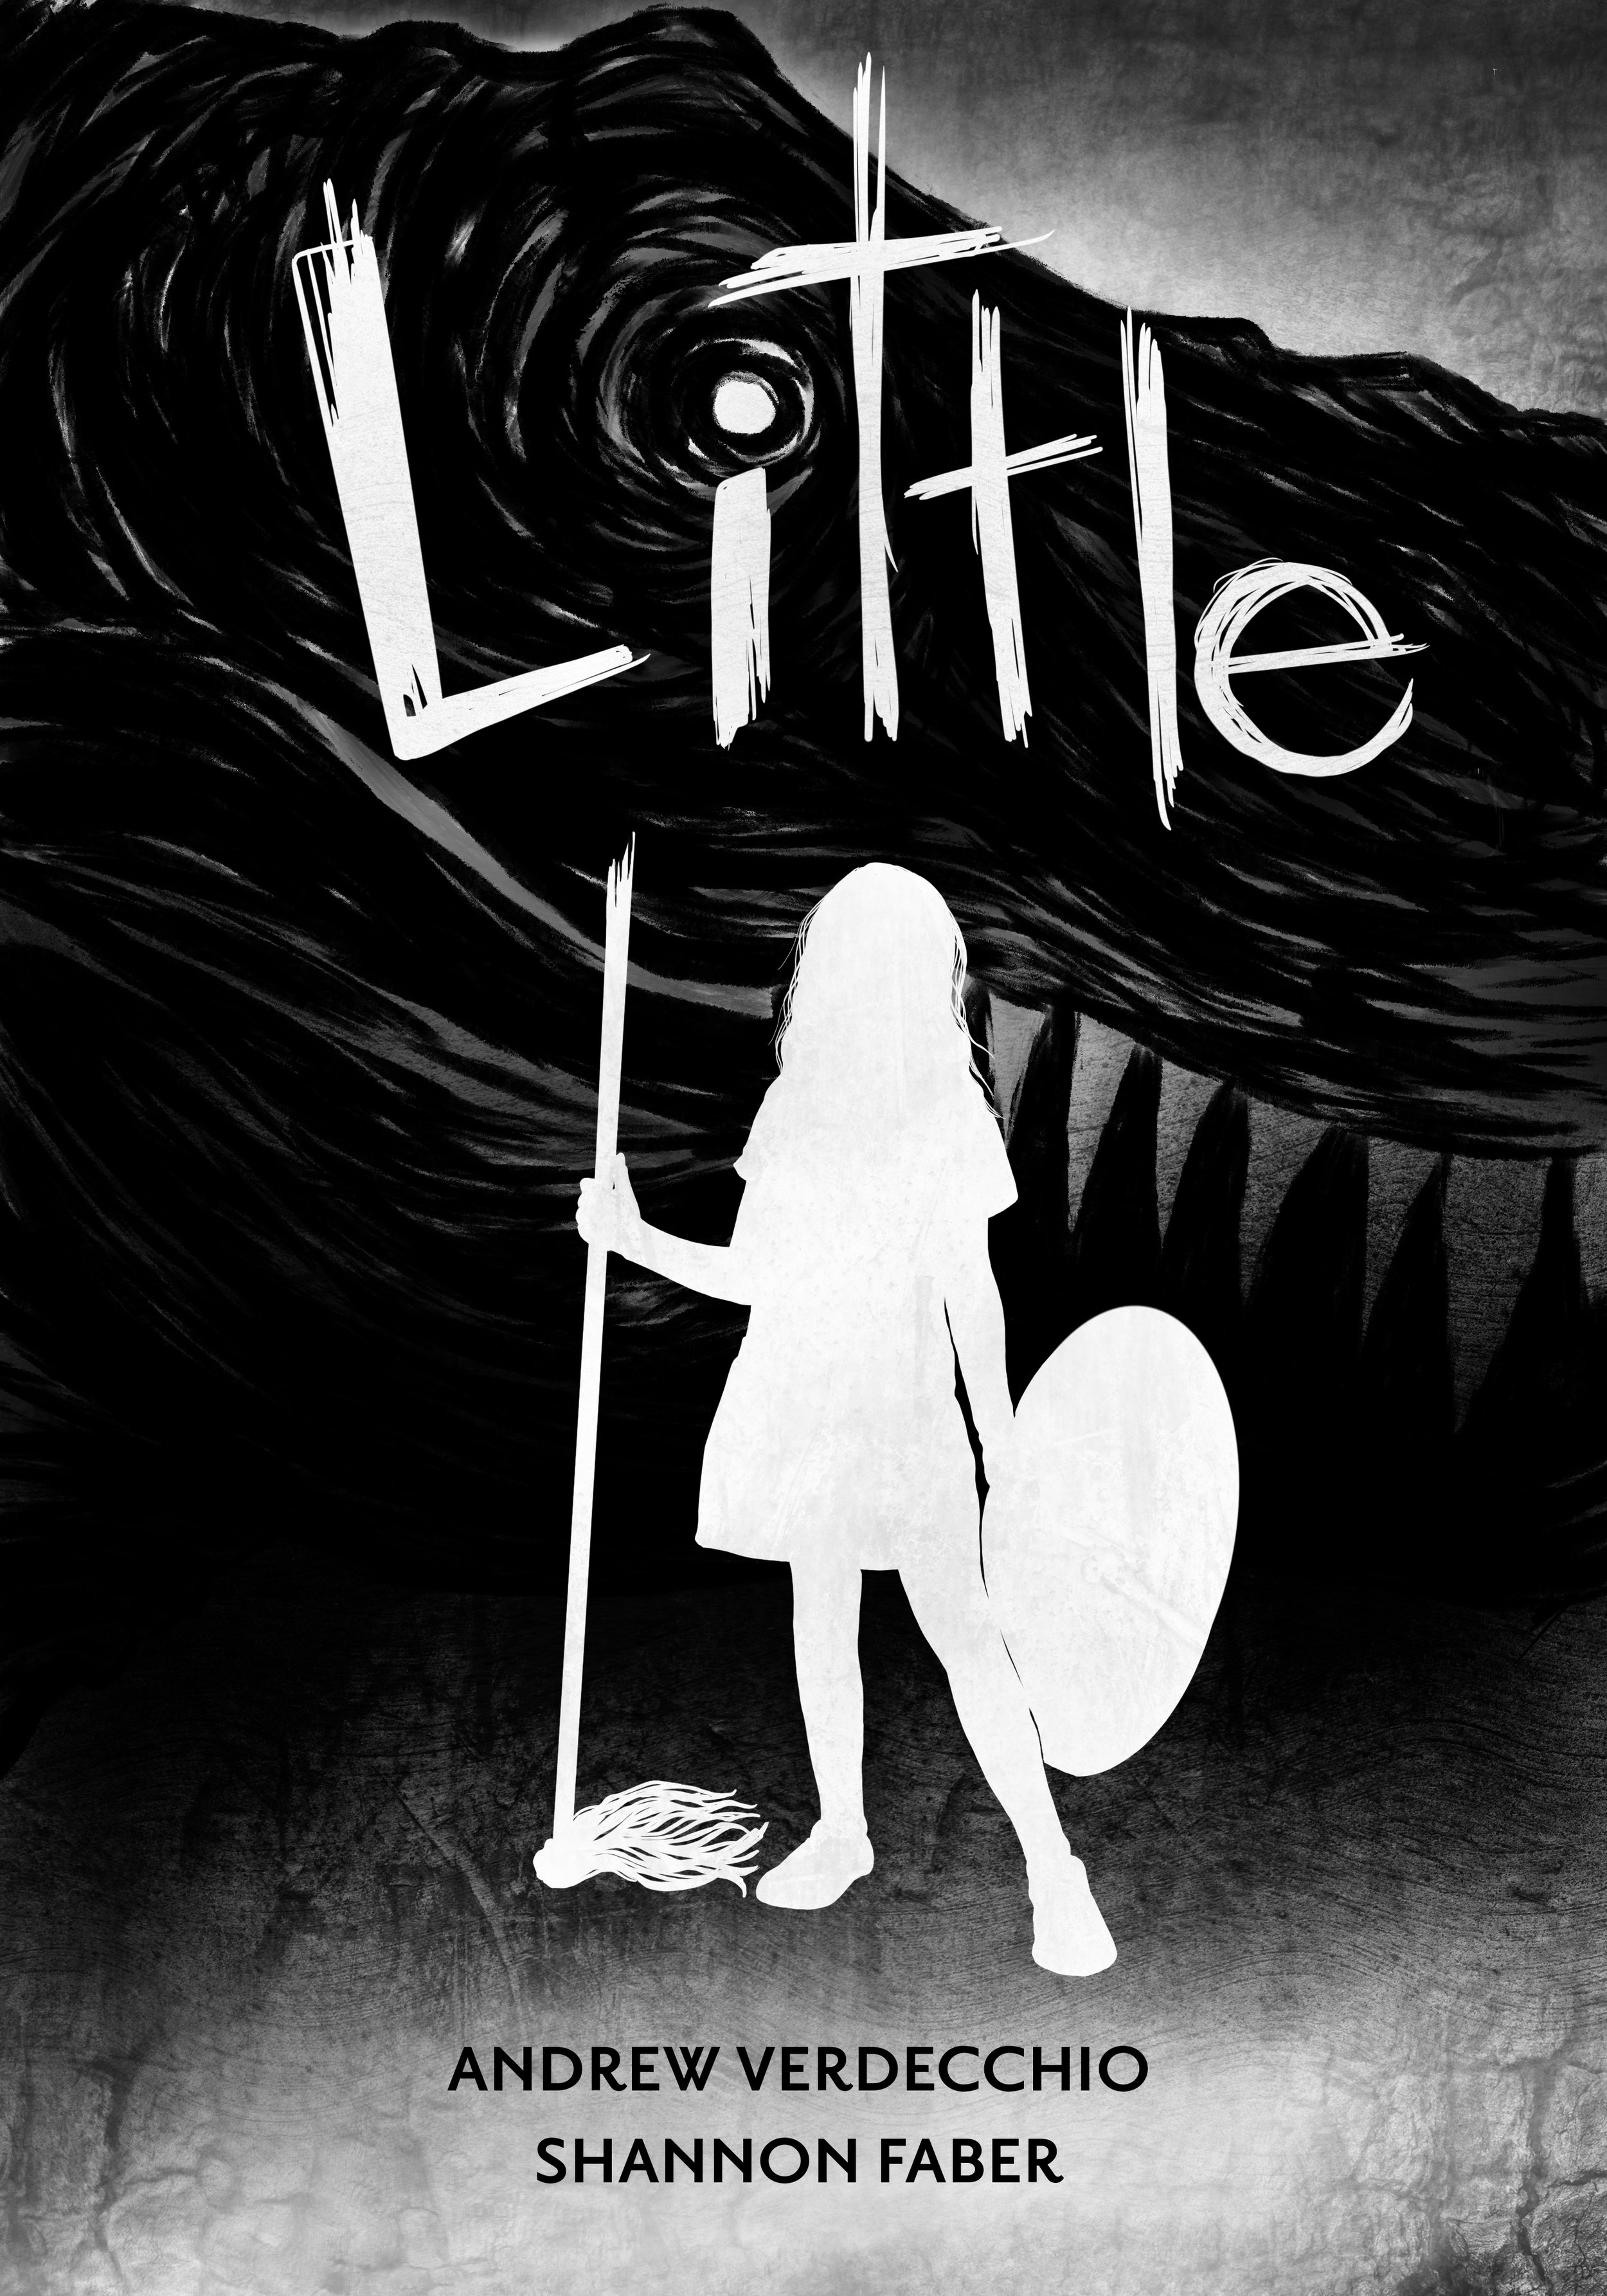 LITTLE - It's wise not to judge a book by its cover, as you and I are soon to discover.Little is a girl living life in her imagination when she is faced with her very own monster to defeat.Written in whimsical rhyme but rooted in a childhood nightmare, Little is a Grimmian story about facing and conquering the darkest of fears.Recommended for ages 8+Paperback, 32 pages©2018 INK & TEA